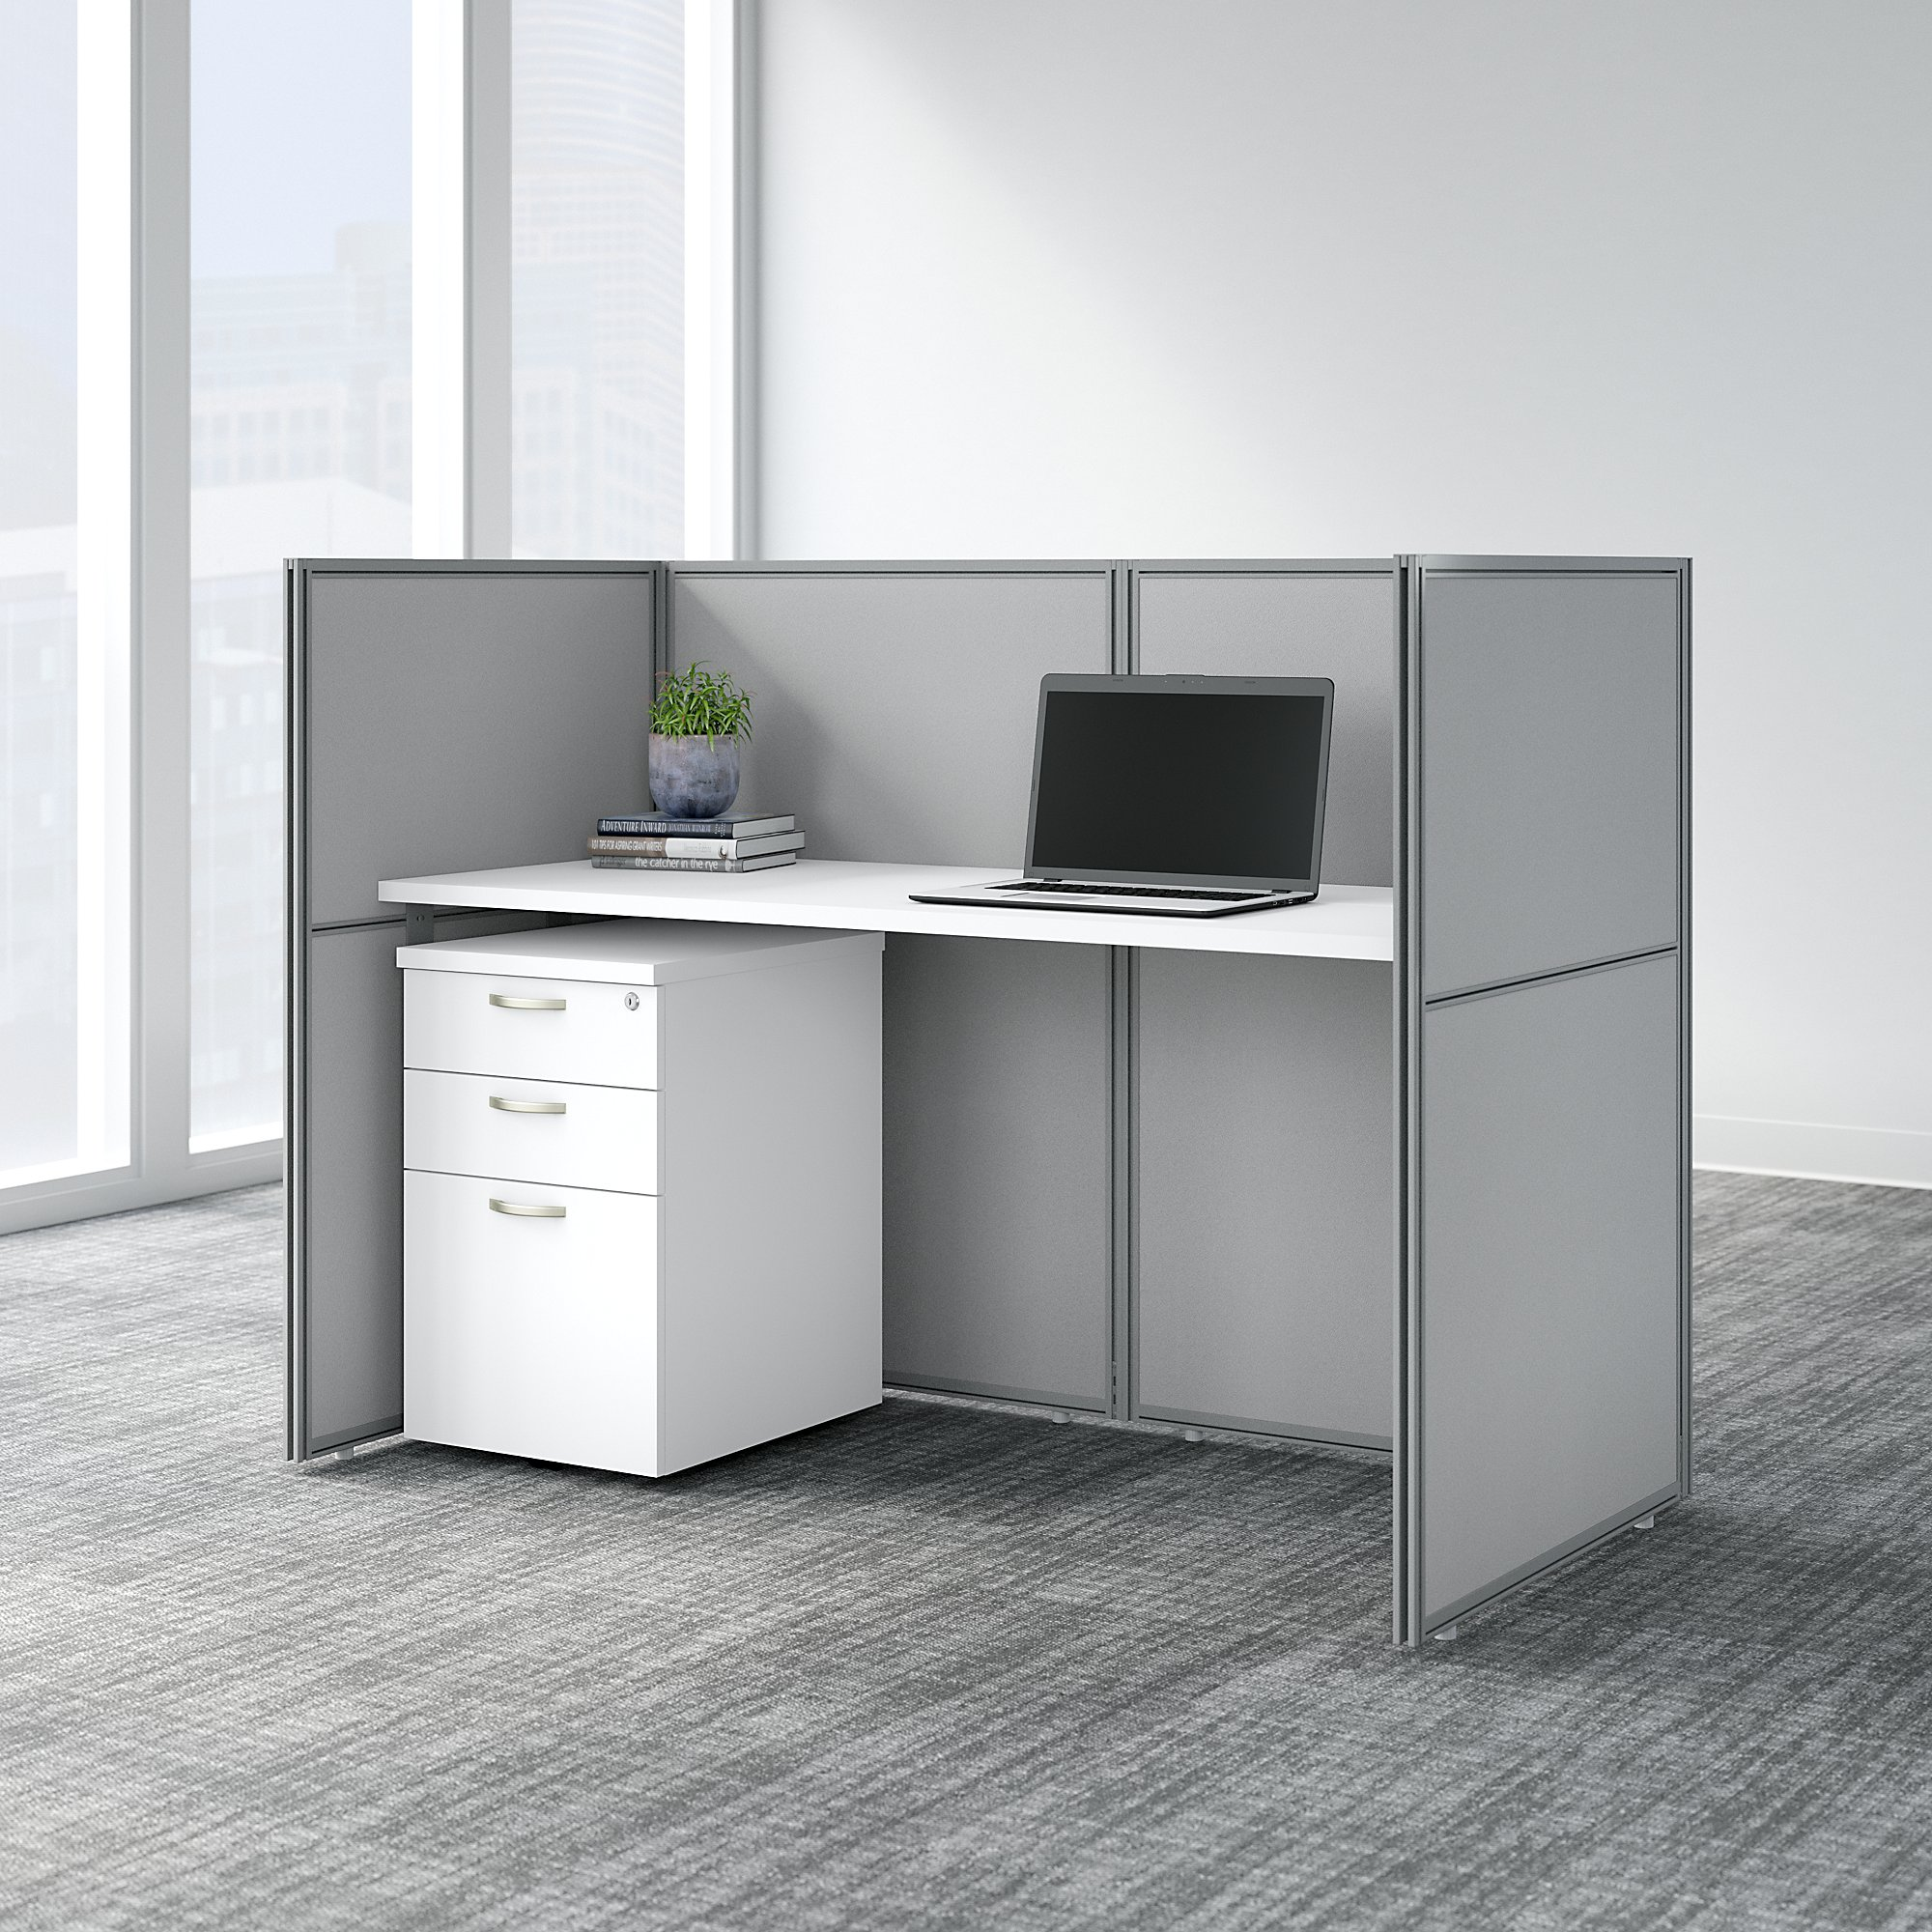 easy office single cubicle with pedestal